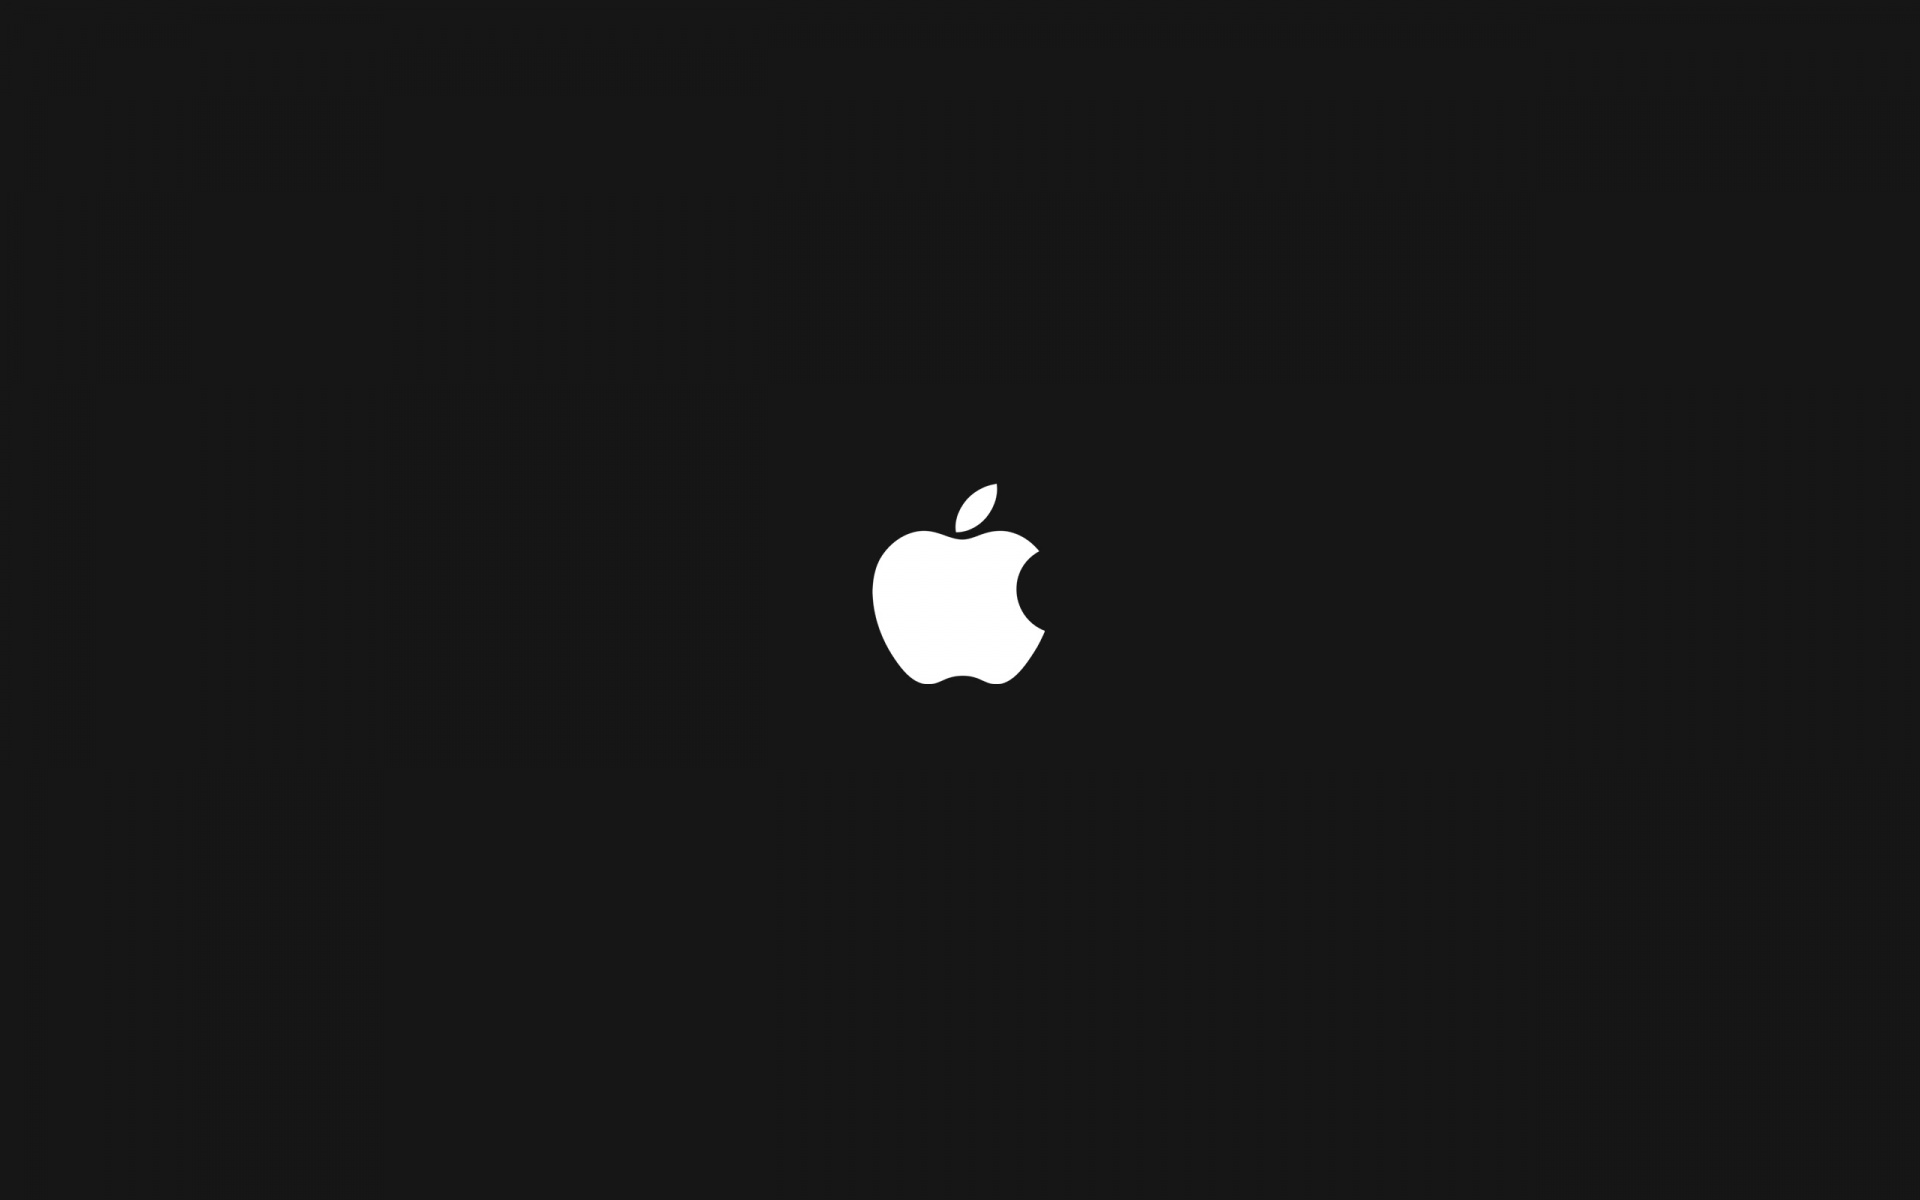 white apple wallpapers 10760 1920x1200